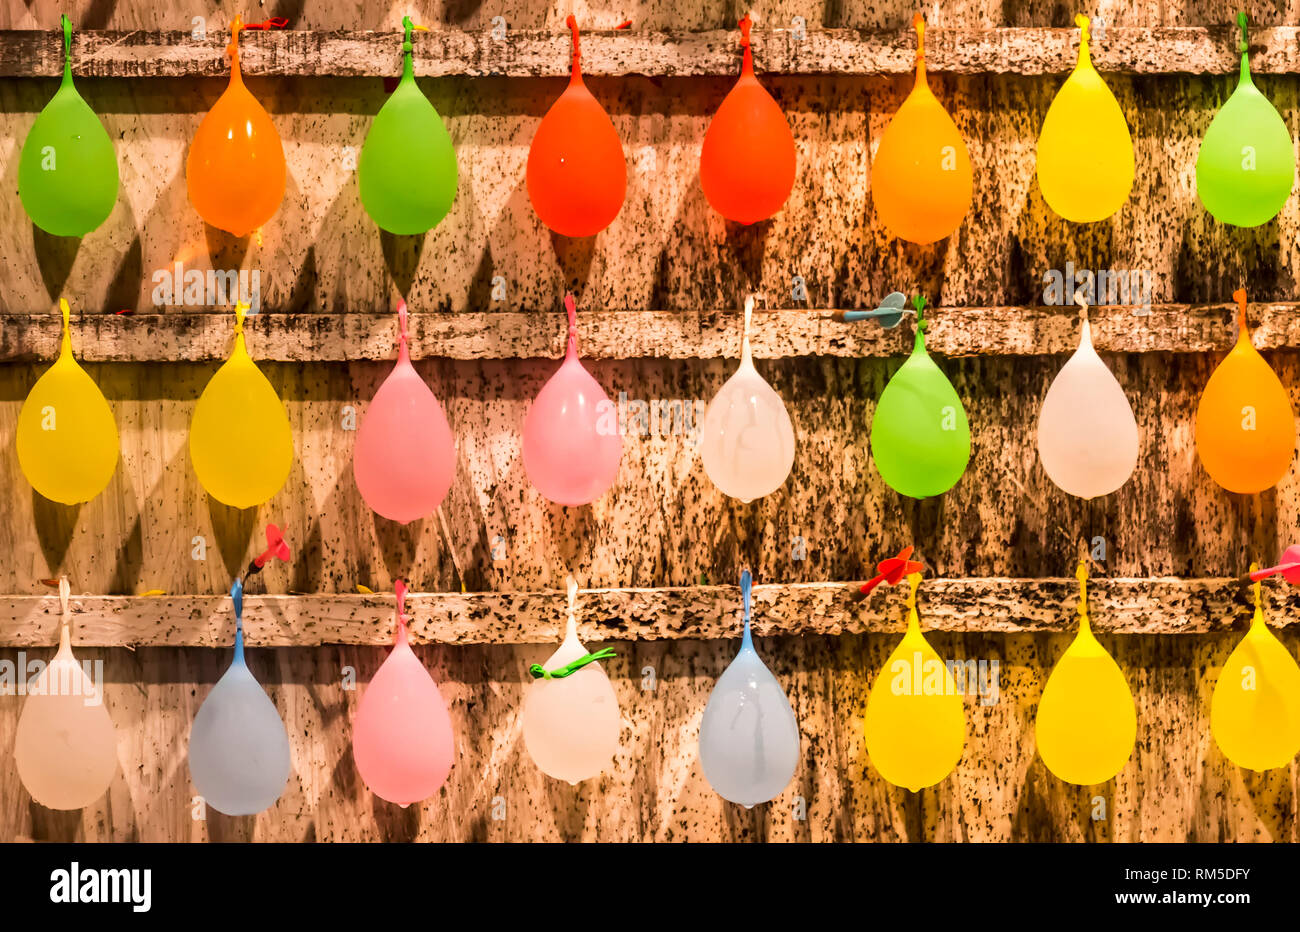 Multi-colored balloons against a wooden board at a amusement game stall along Kenting Street Night Market - Stock Image